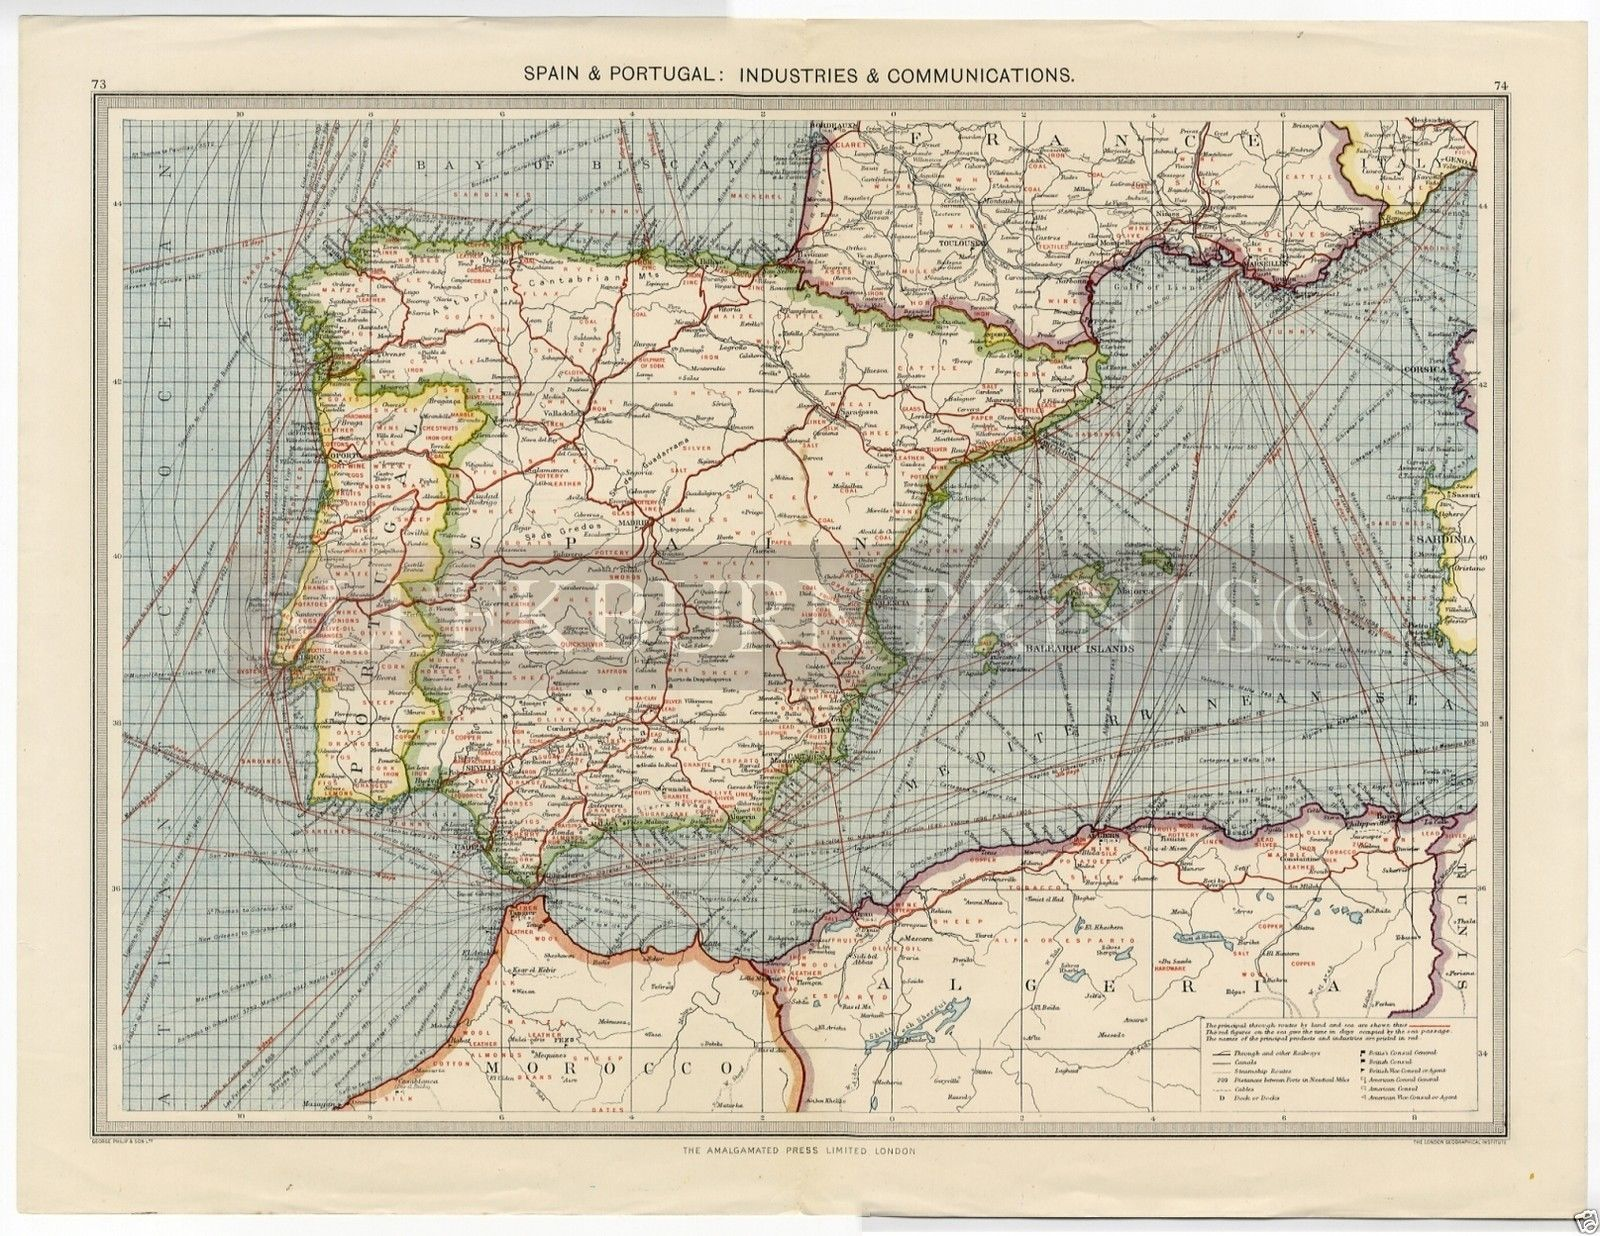 Map Of Portugal Spain.1905 Map Portugal Spain Balearics Sea Routes Industry